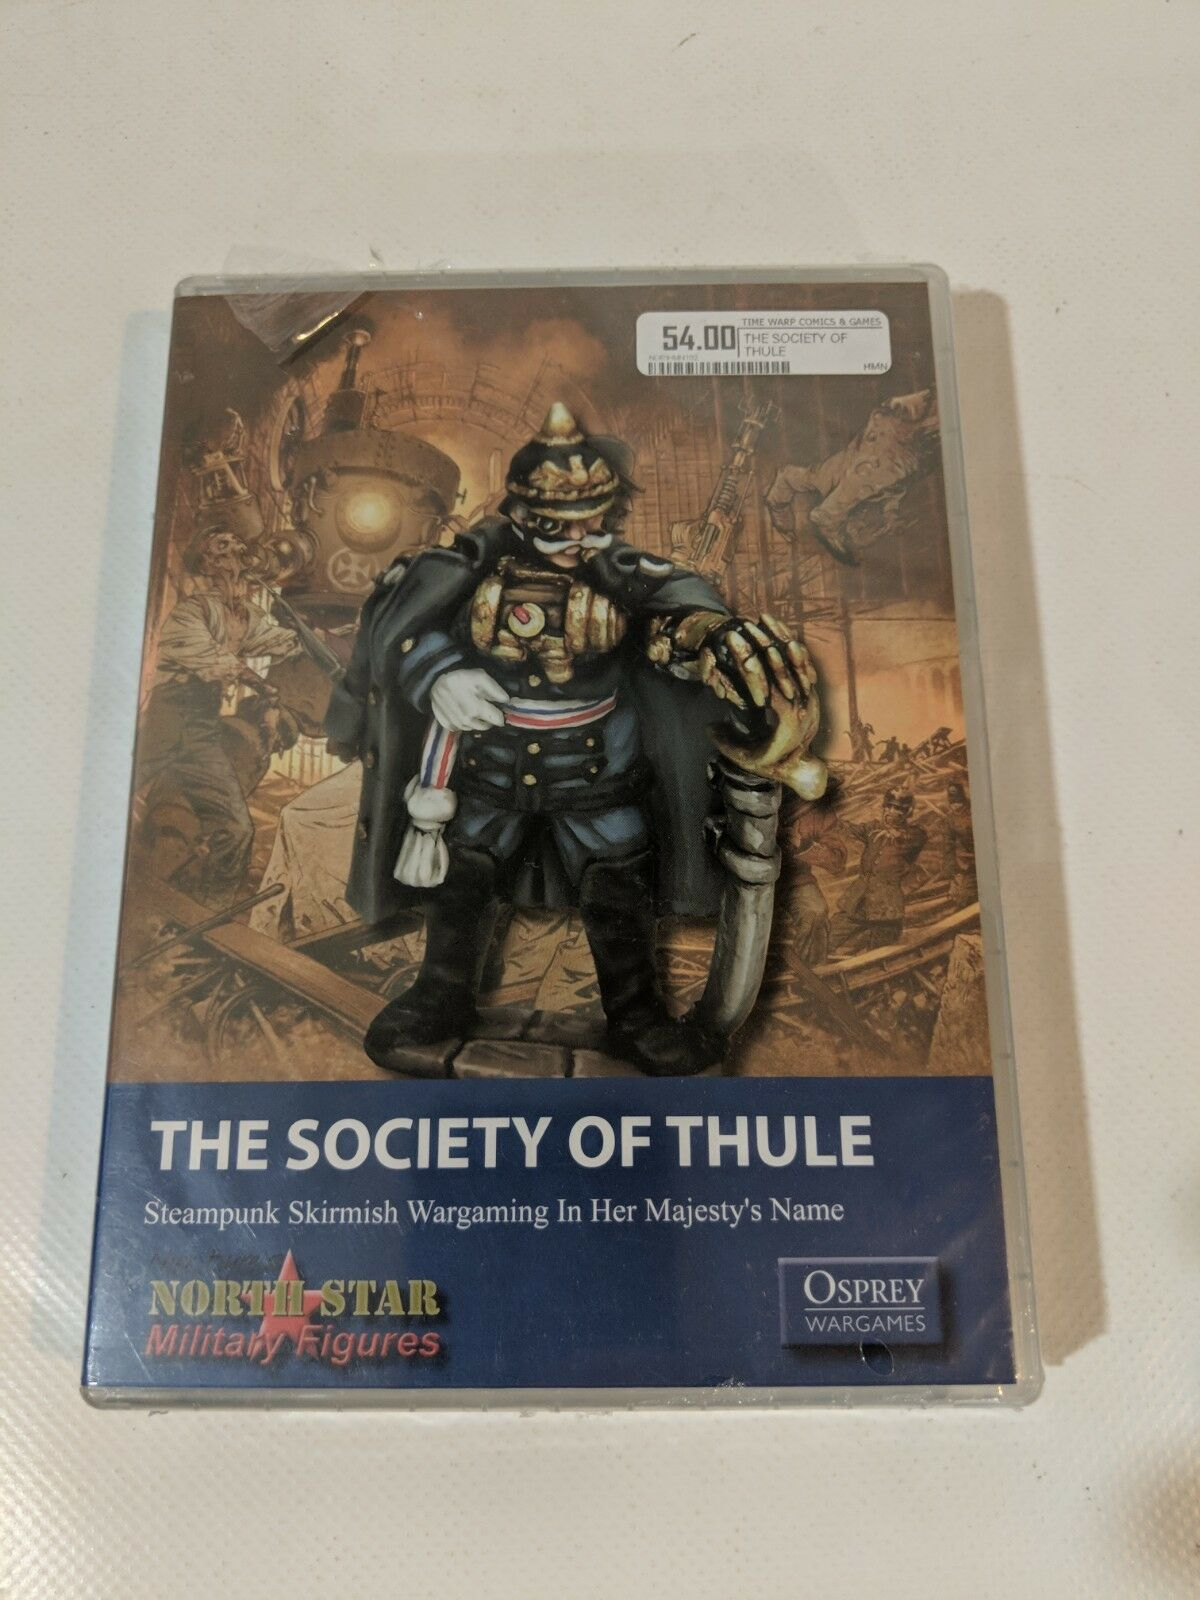 Osprey Wargames North Star Figures In Her Majesty's Name The Society of Thule